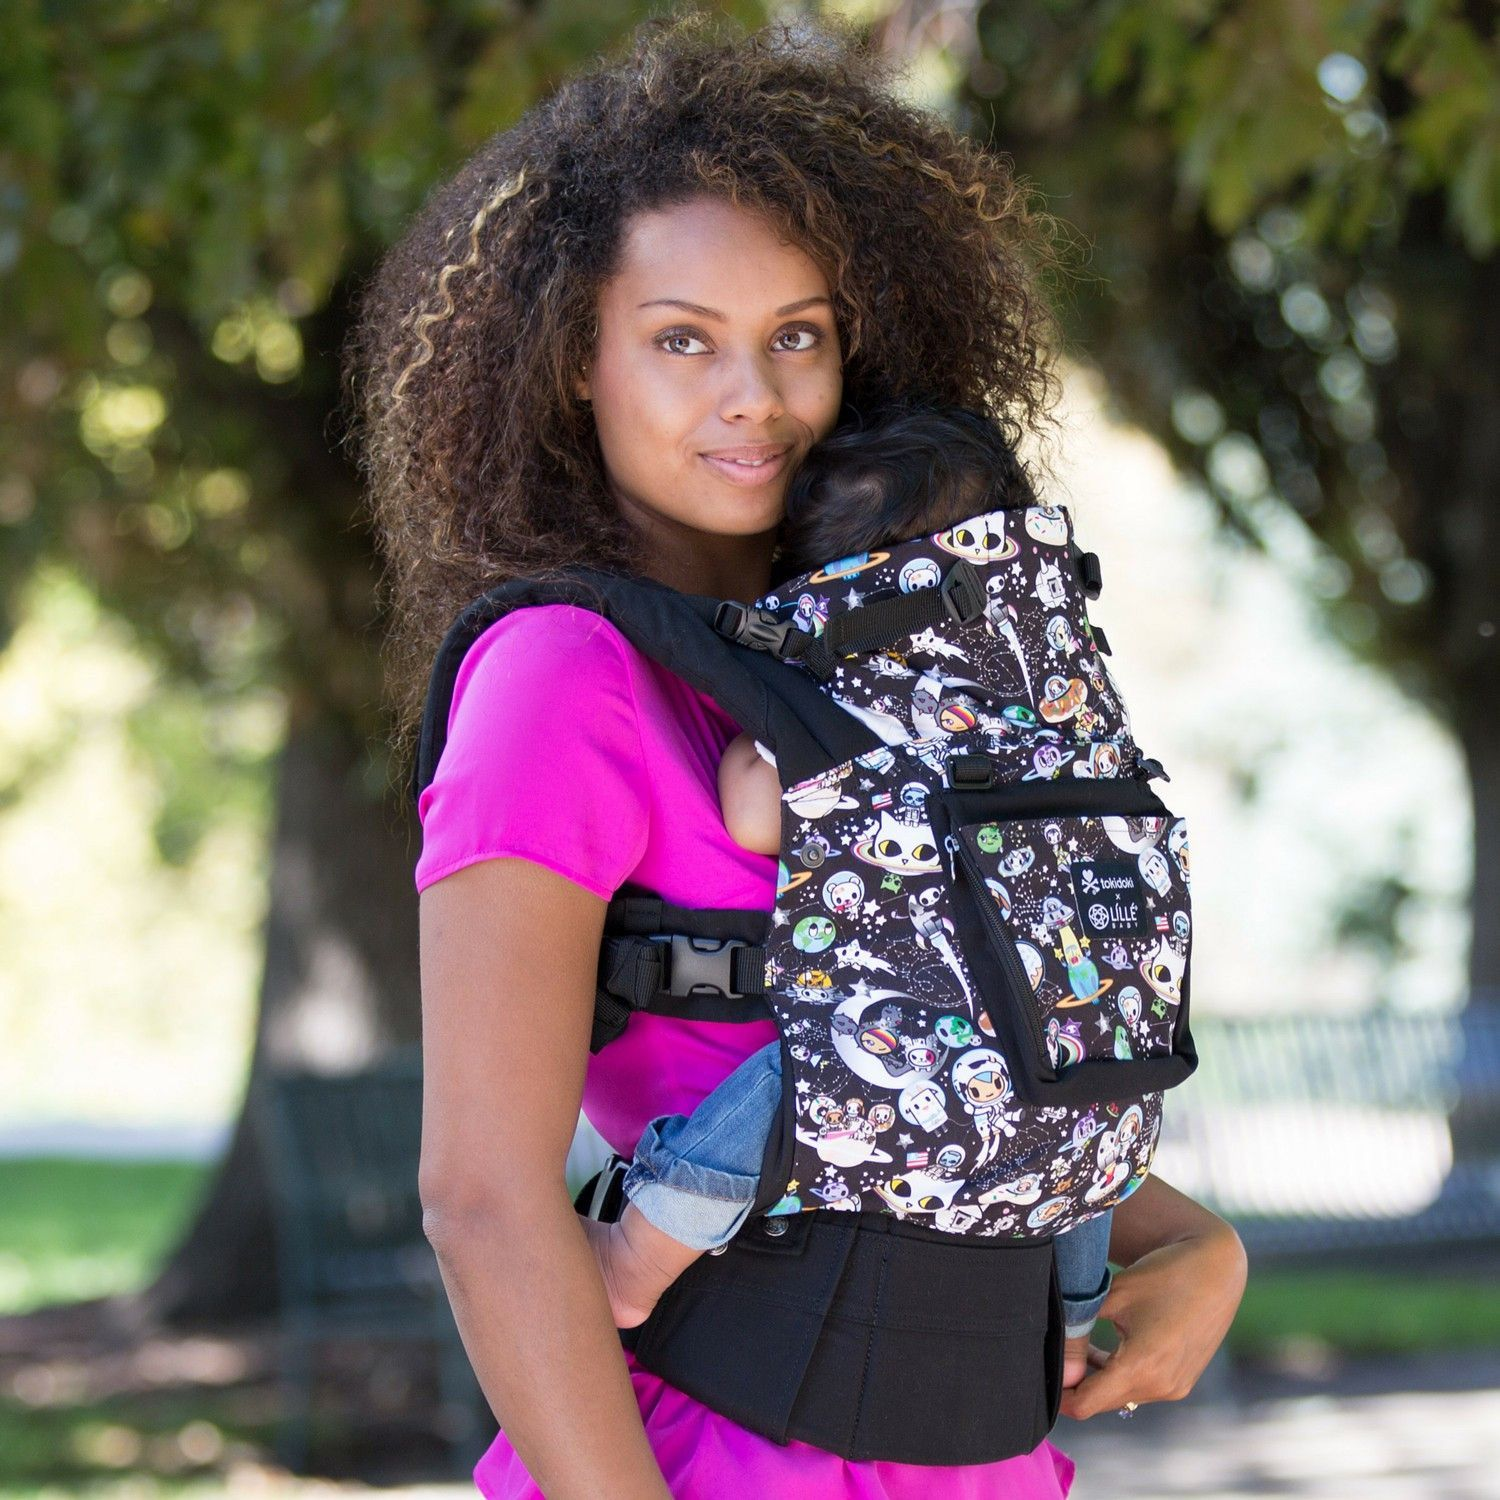 Lillebaby Complete Original Baby Carrier - Tokidoki Space (NEW with Pockets)